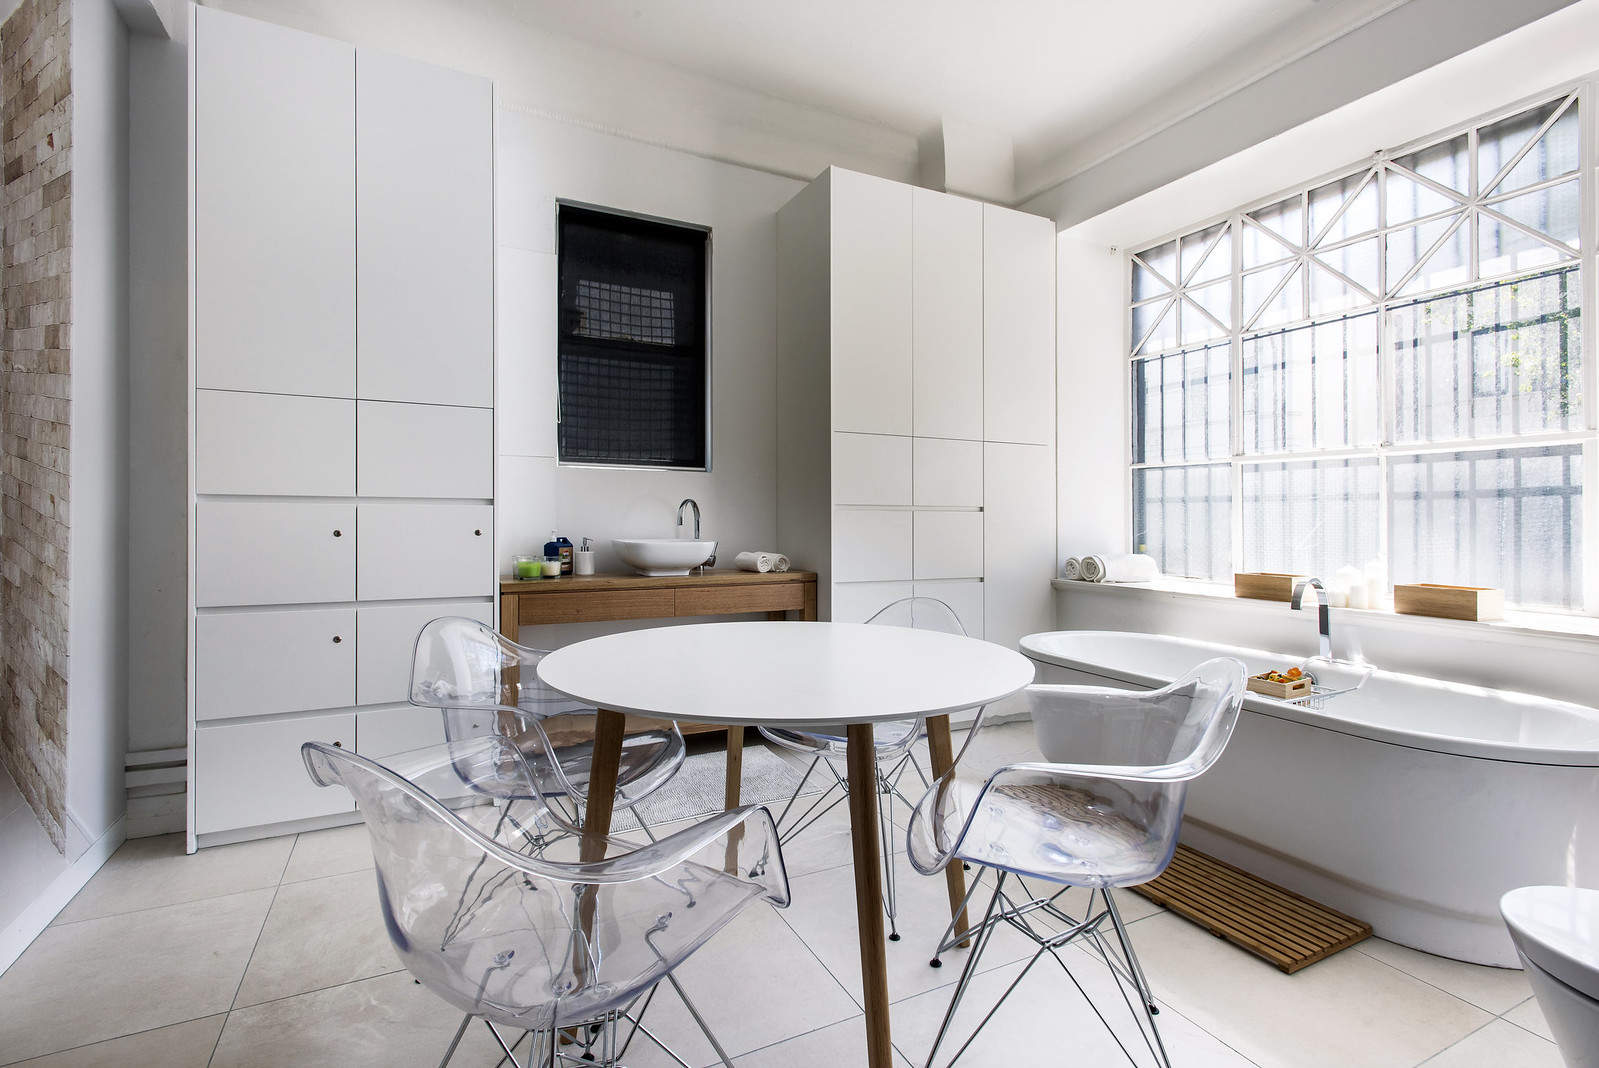 Houzz bathroom ideas - Our Bathroom Meeting Room Is Next Styled Clean White With Timber Accents The Bathroom Decal Is From One Of Our Houzz Professionals Green Country